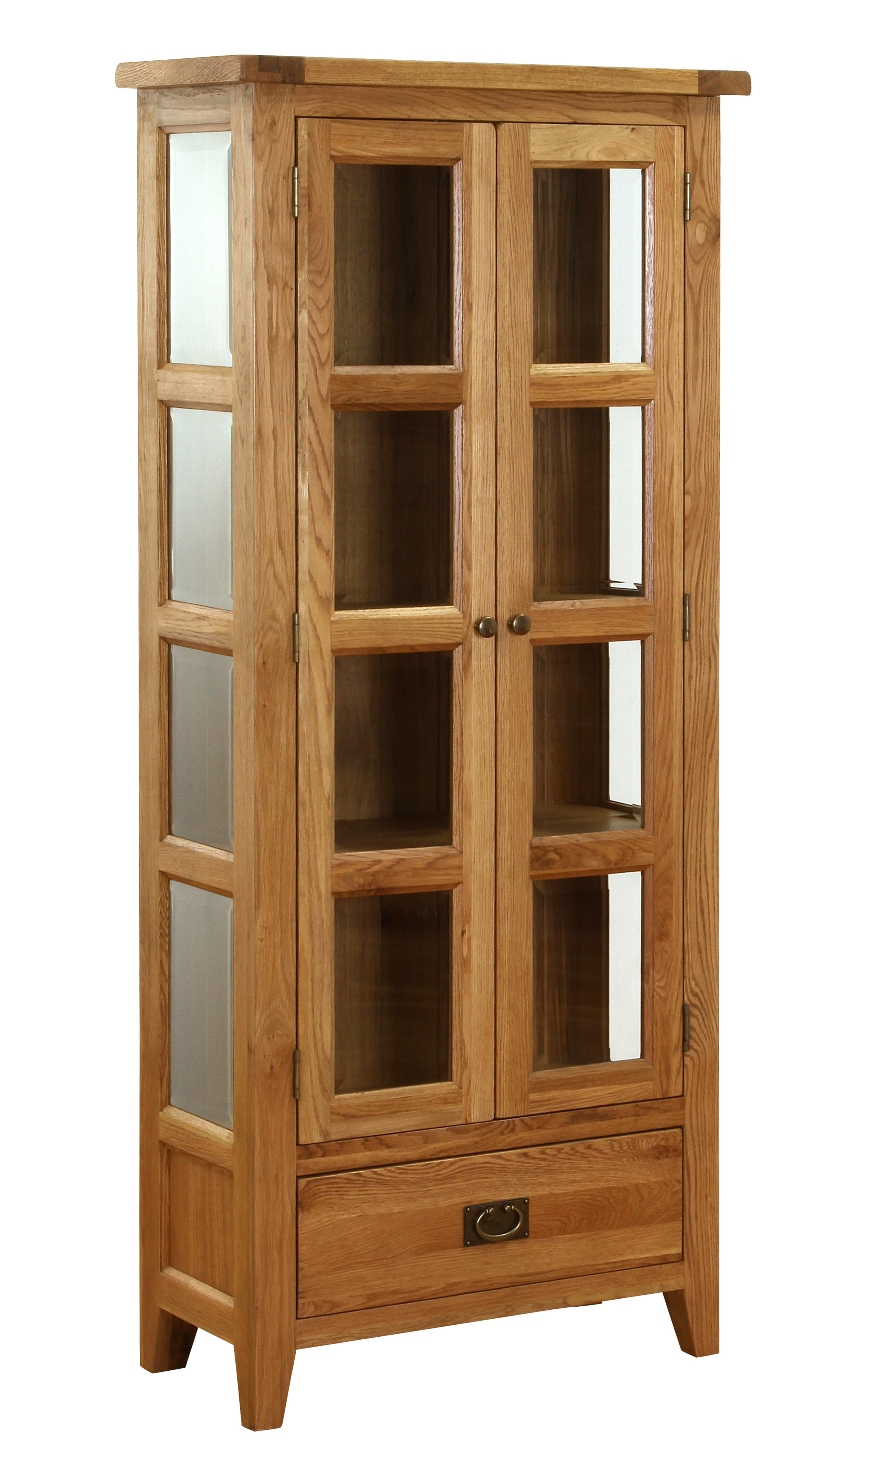 GLAZED DISPLAY CABINET w 78 x d 36 x h 180 cm € 695 Product Code: NB032